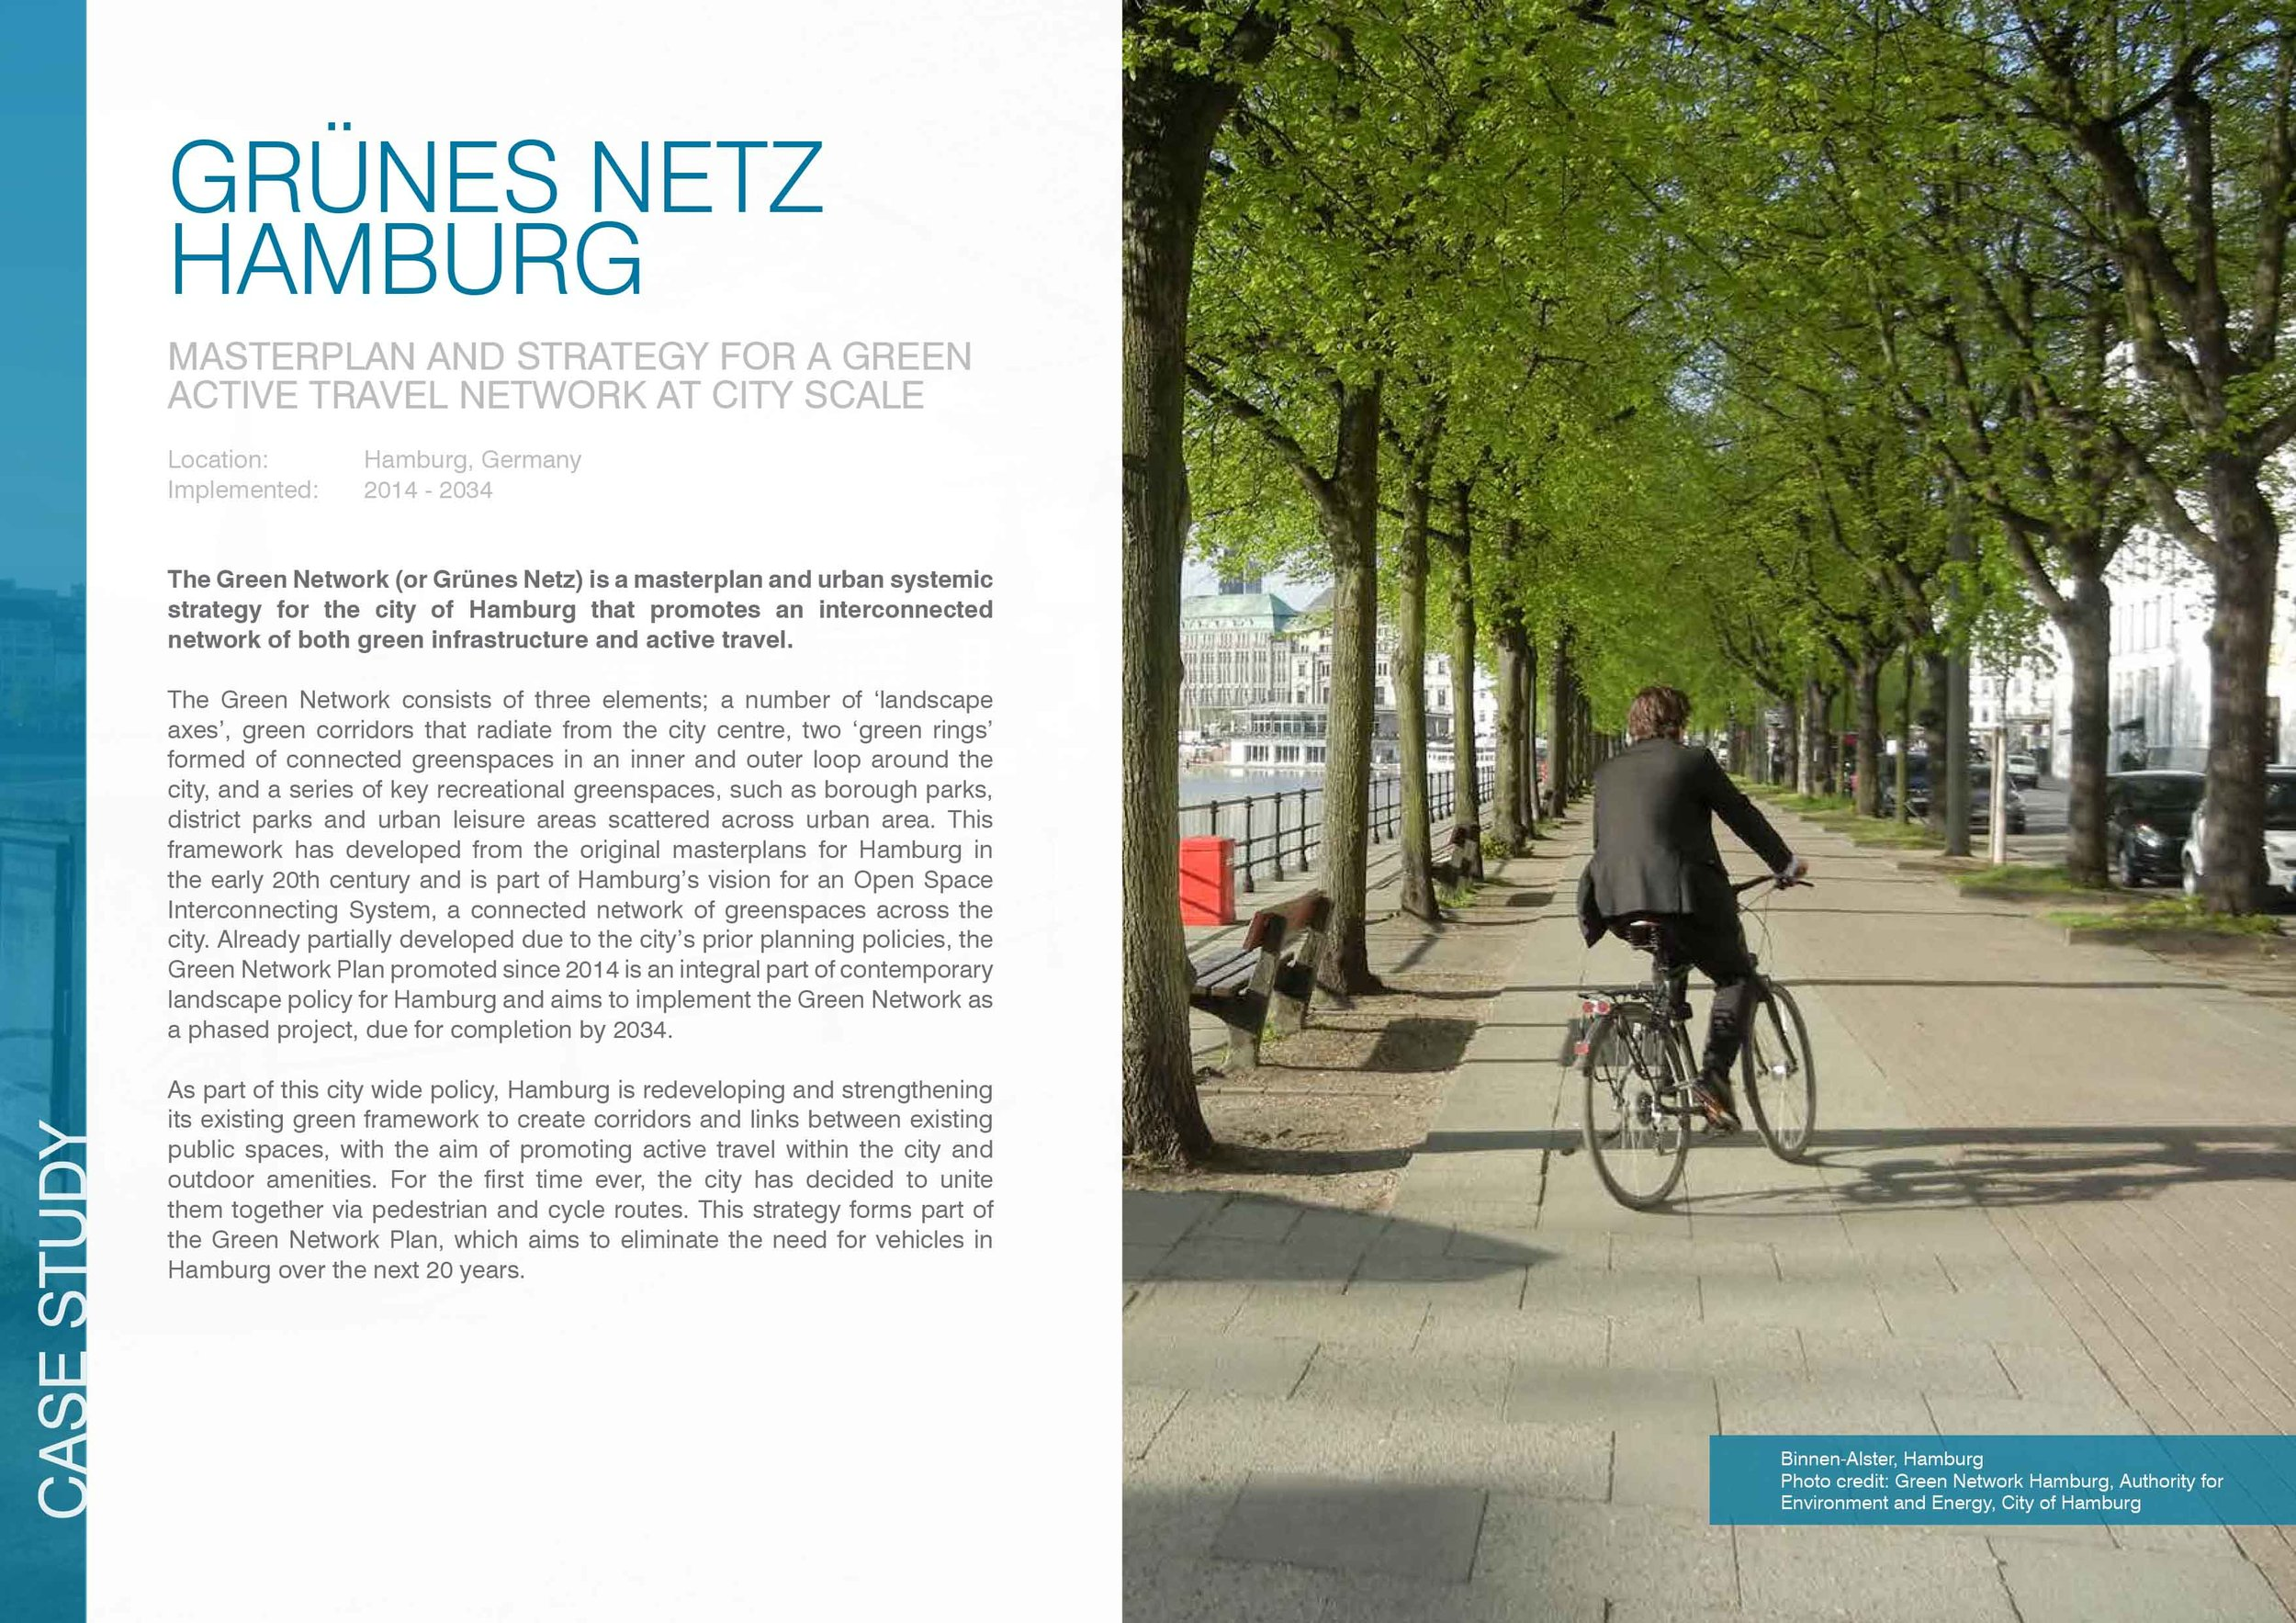 Grunes Netz or the 'Green Network', Hamburg:  this is a masterplan and strategy for a green active travel network across the city.